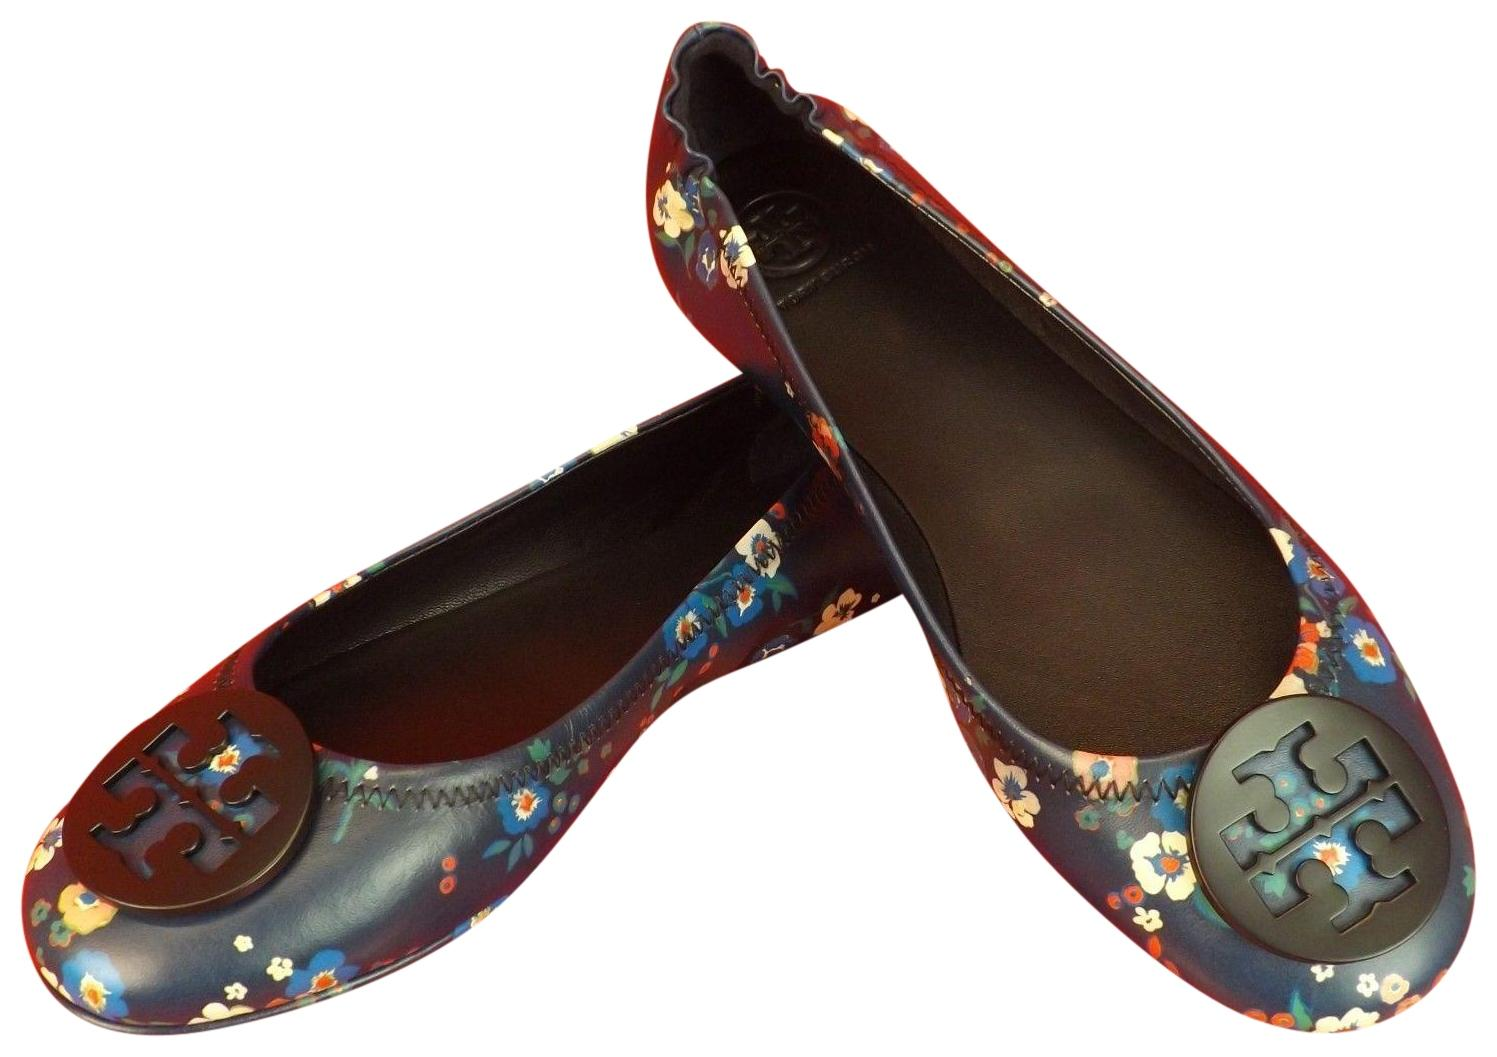 6ac6cc35bf51c Tory Burch Navy Blue   Multi-color Minnie Minnie Minnie Travel Pansy  Bouquet Floral Leather Reva Ballet Flats Size US 10 Regular (M